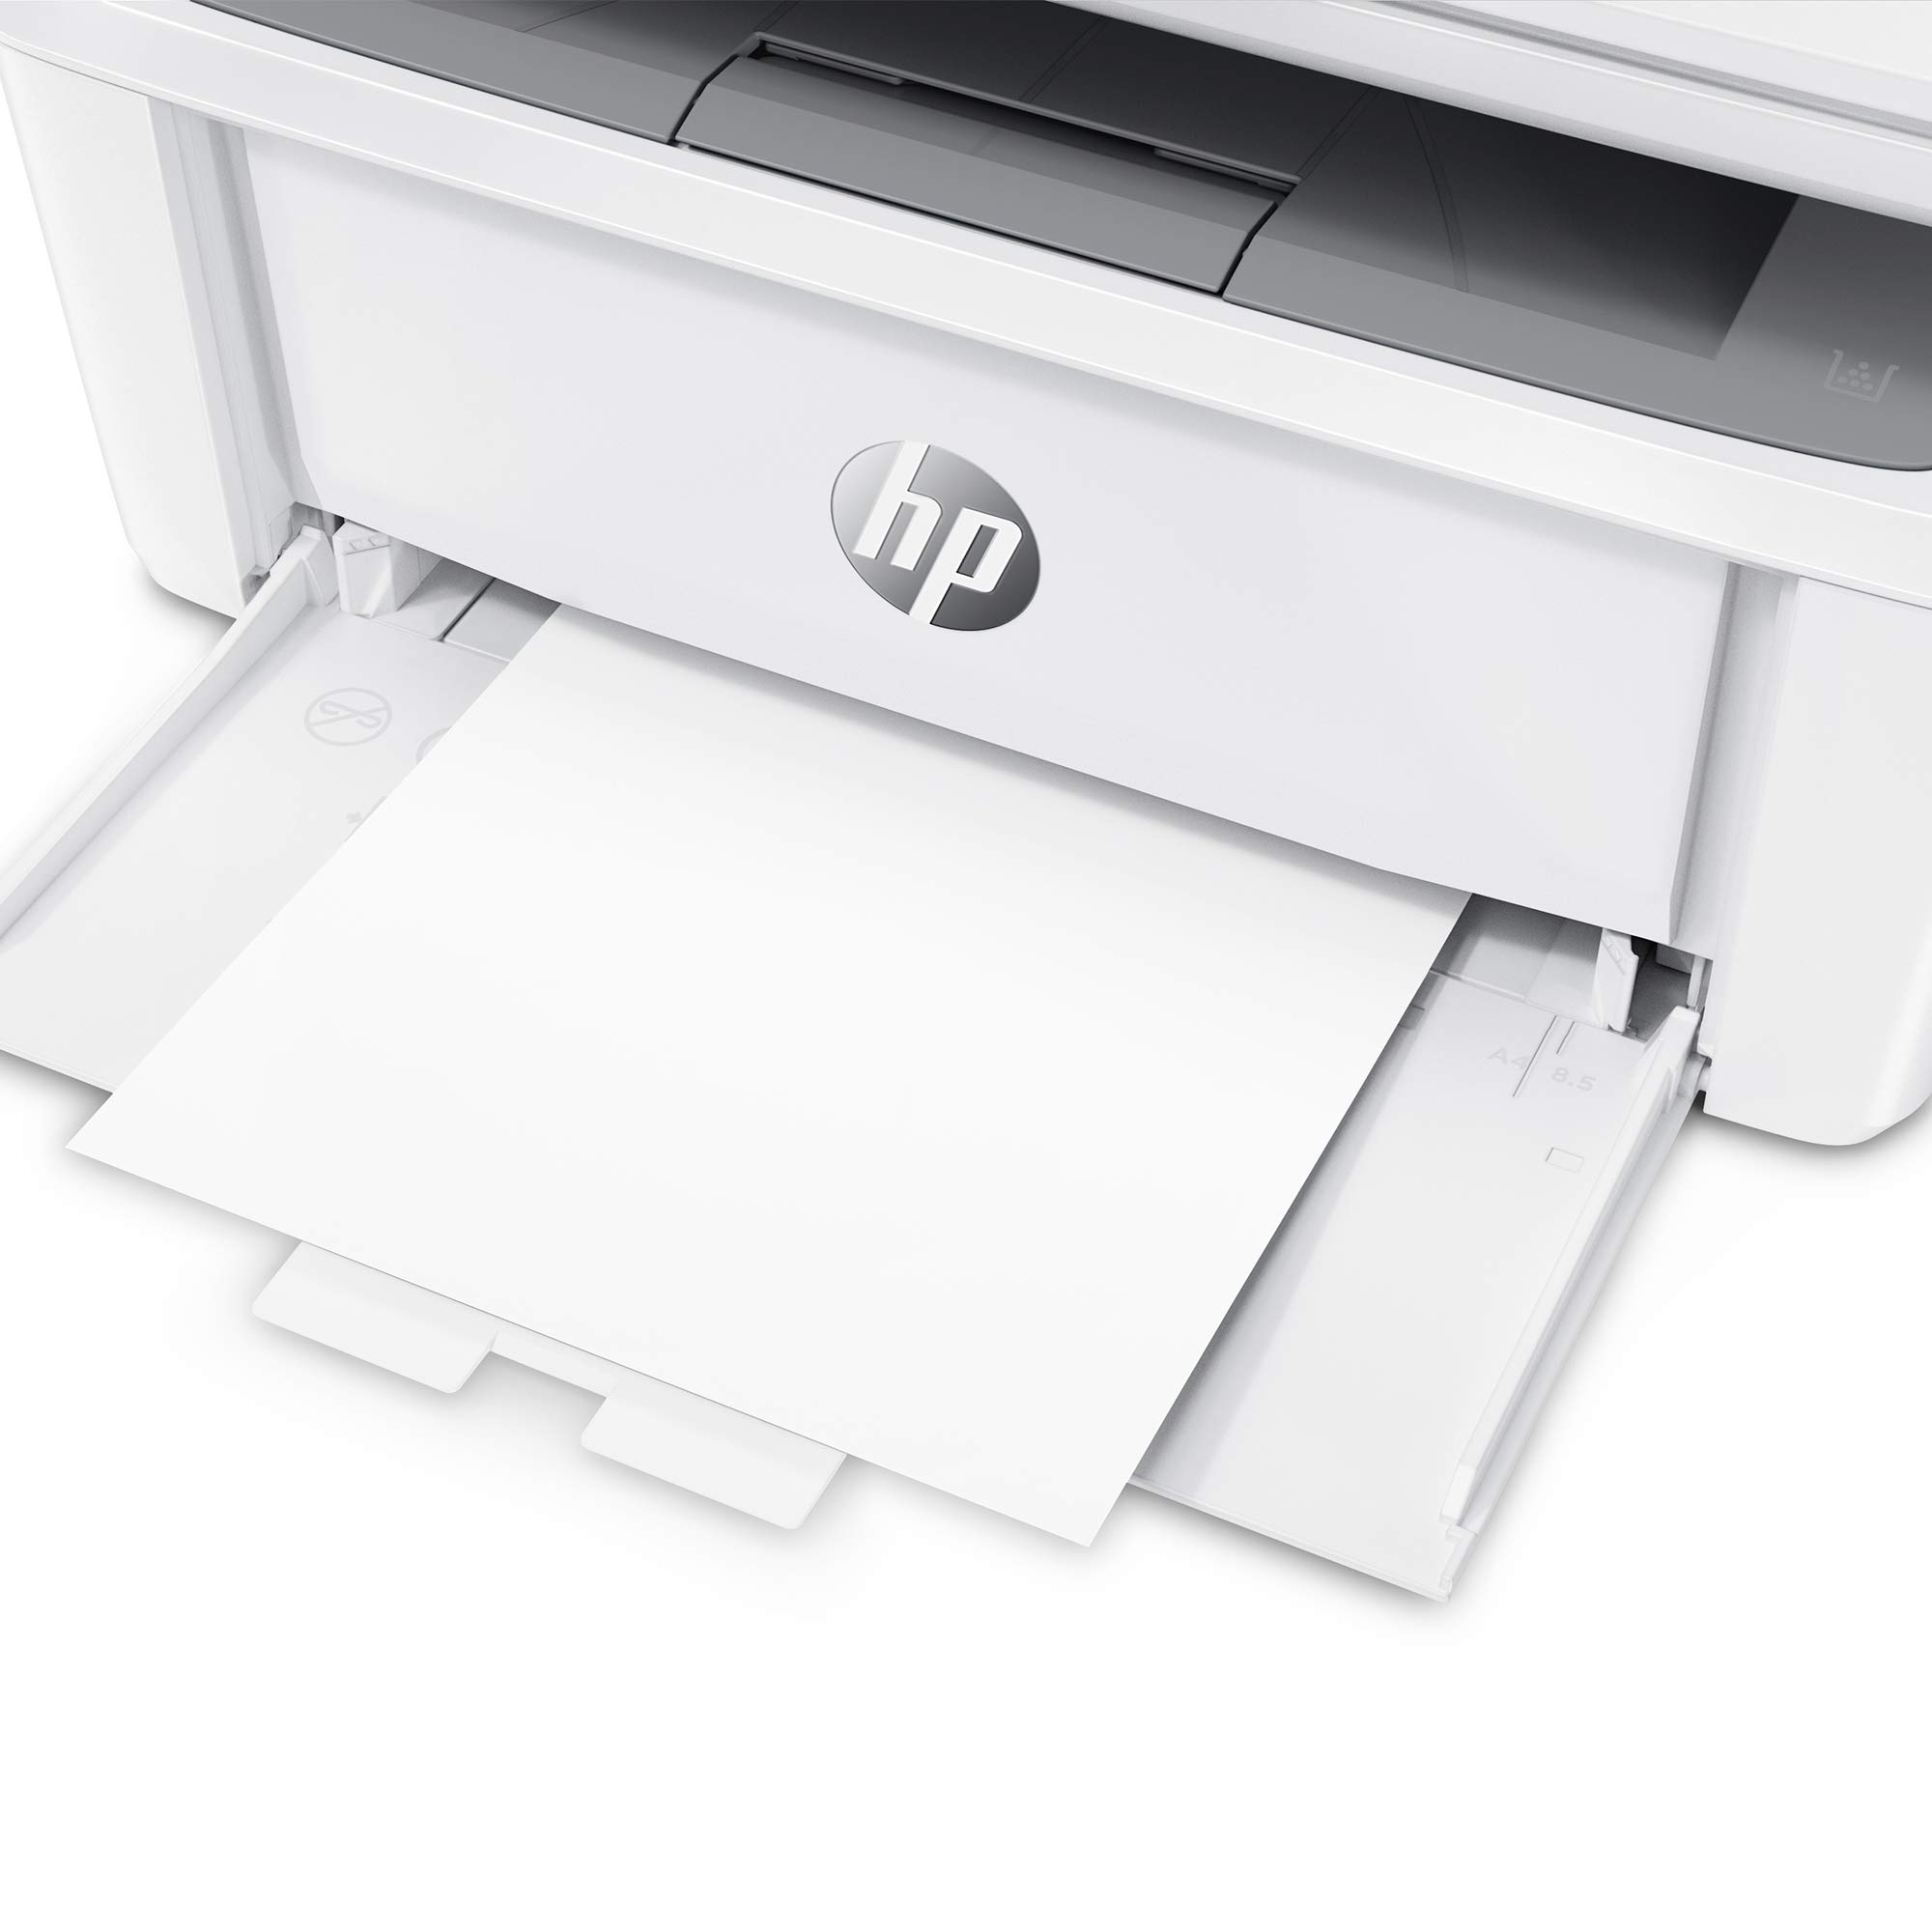 HP Laserjet Pro M31w All-in-One Wireless Monochrome Laser Printer with Mobile Printing (Y5S55A) by HP (Image #11)